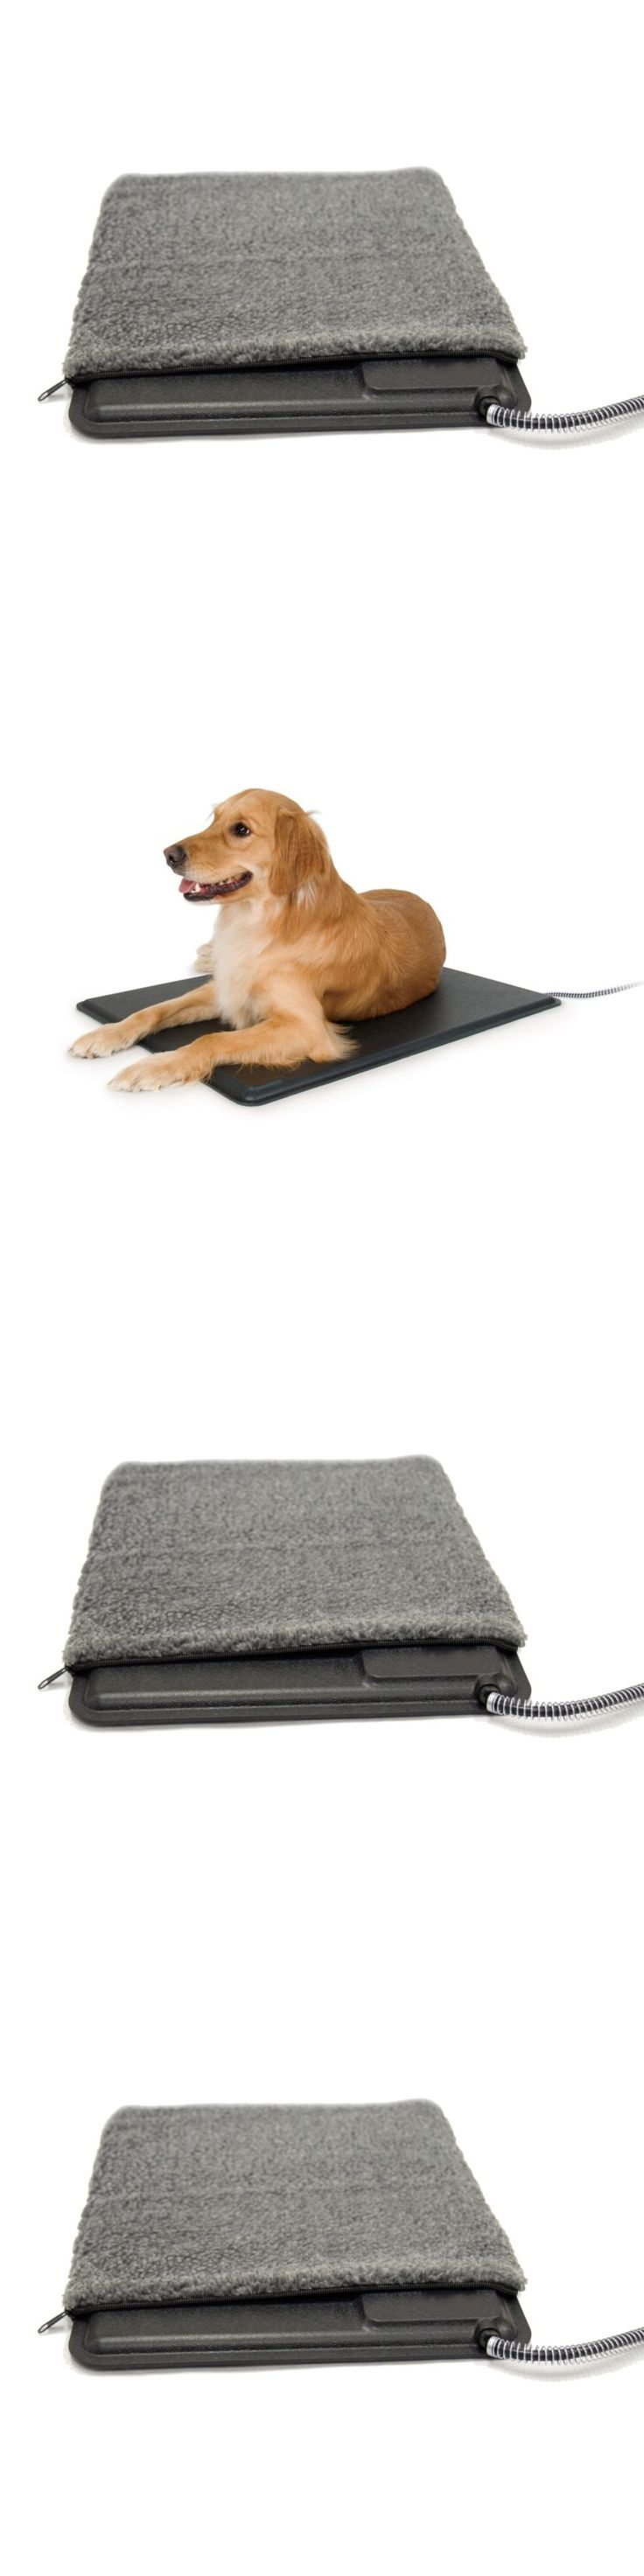 Beds 20744: Heated Pet Bed Warmer Cover Dog Cats For Heating Outdoor Heater Mat - No Pad -> BUY IT NOW ONLY: $31.65 on eBay!